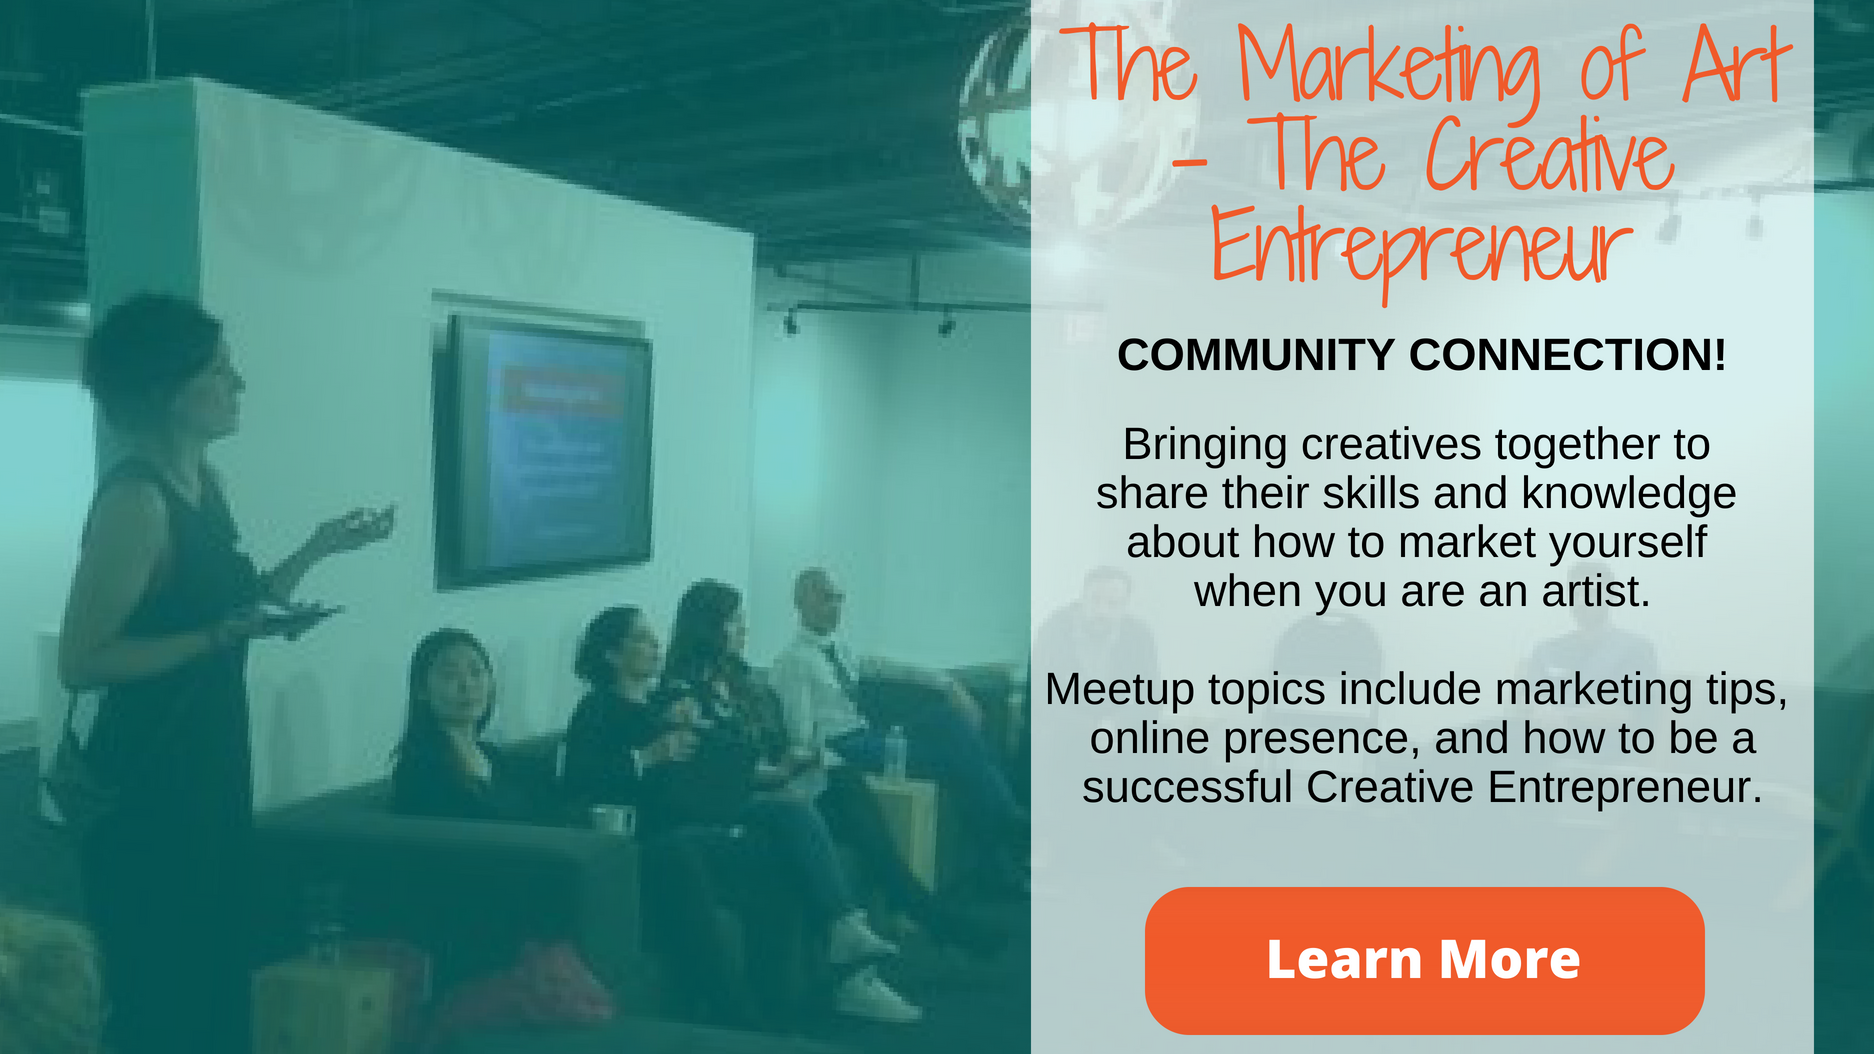 Marketing of Art - The Creative Entrepreneur